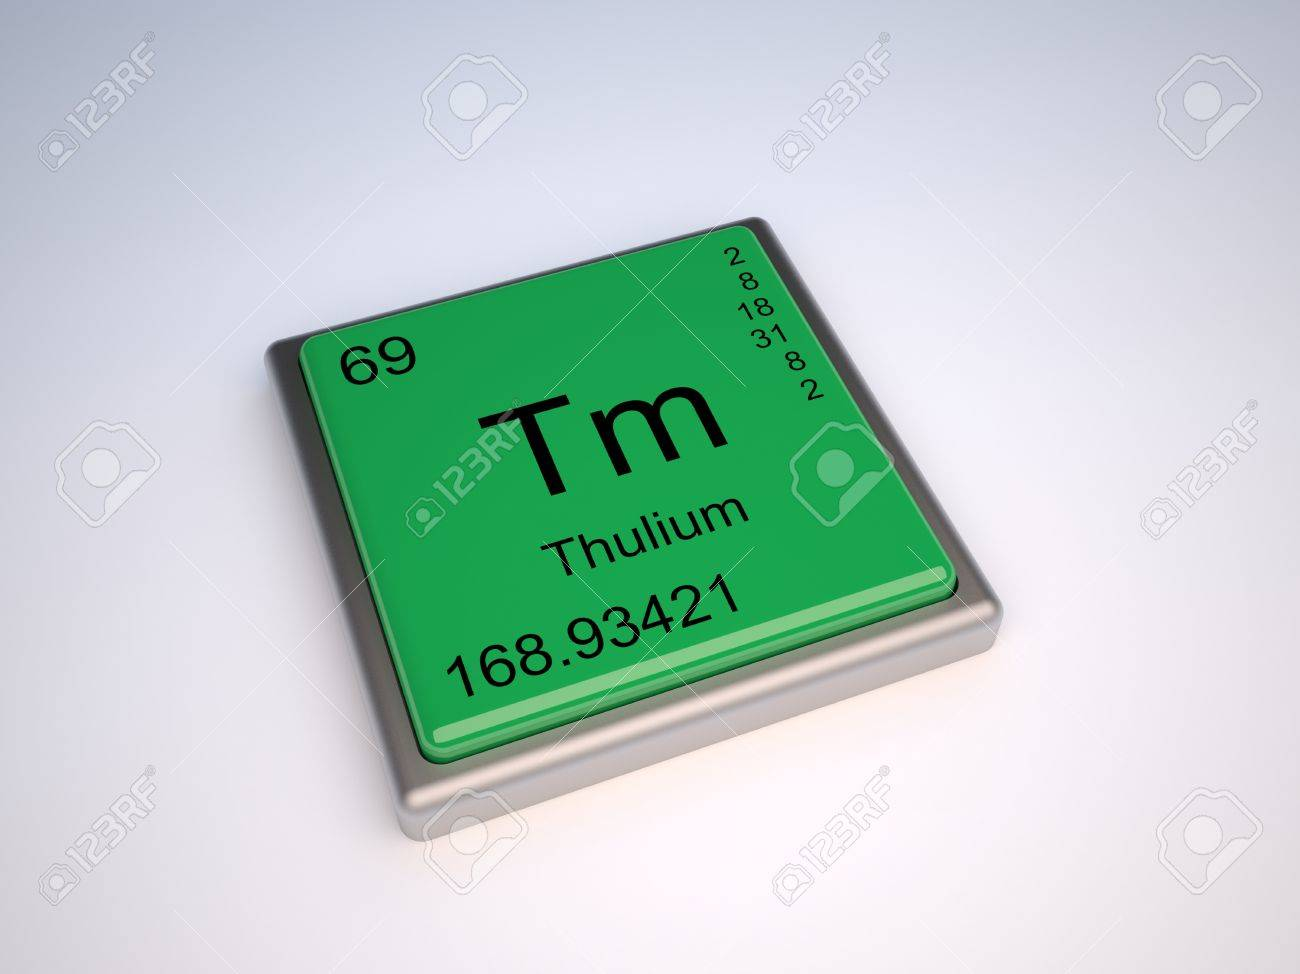 Periodic table thulium gallery periodic table images thulium periodic table images periodic table images periodic table thulium images periodic table images thulium chemical gamestrikefo Gallery